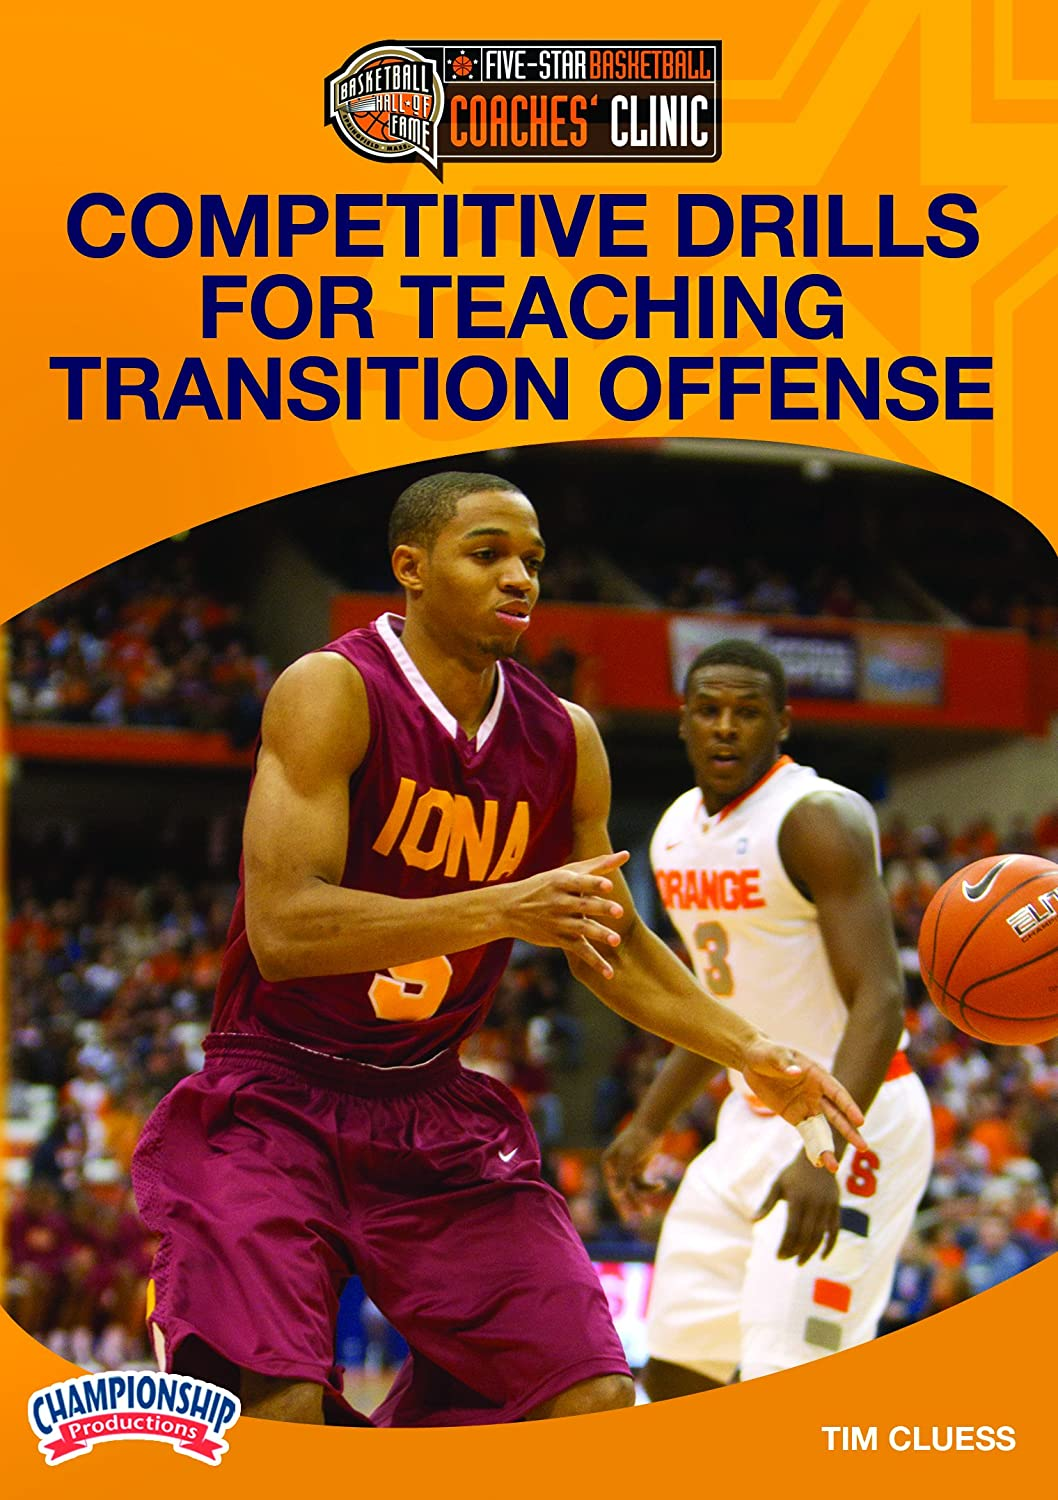 National products Competitive Drills for Product Teaching Transition Offense